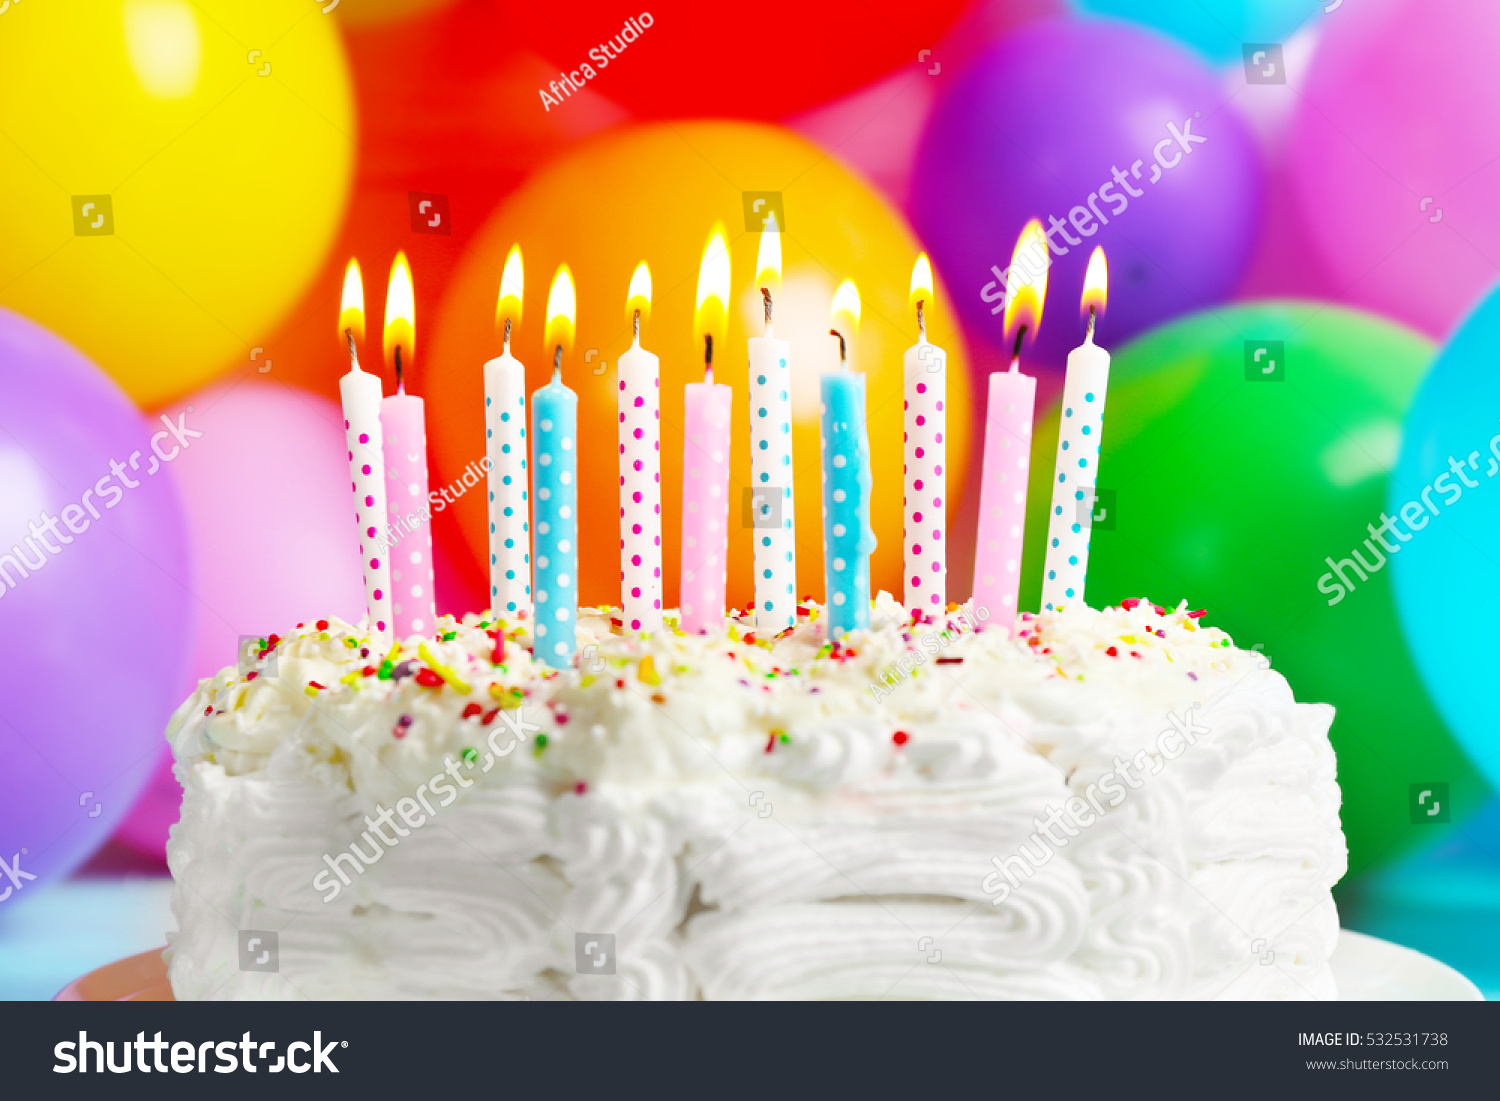 Birthday Cake Candles On Balloons Background Stock Photo